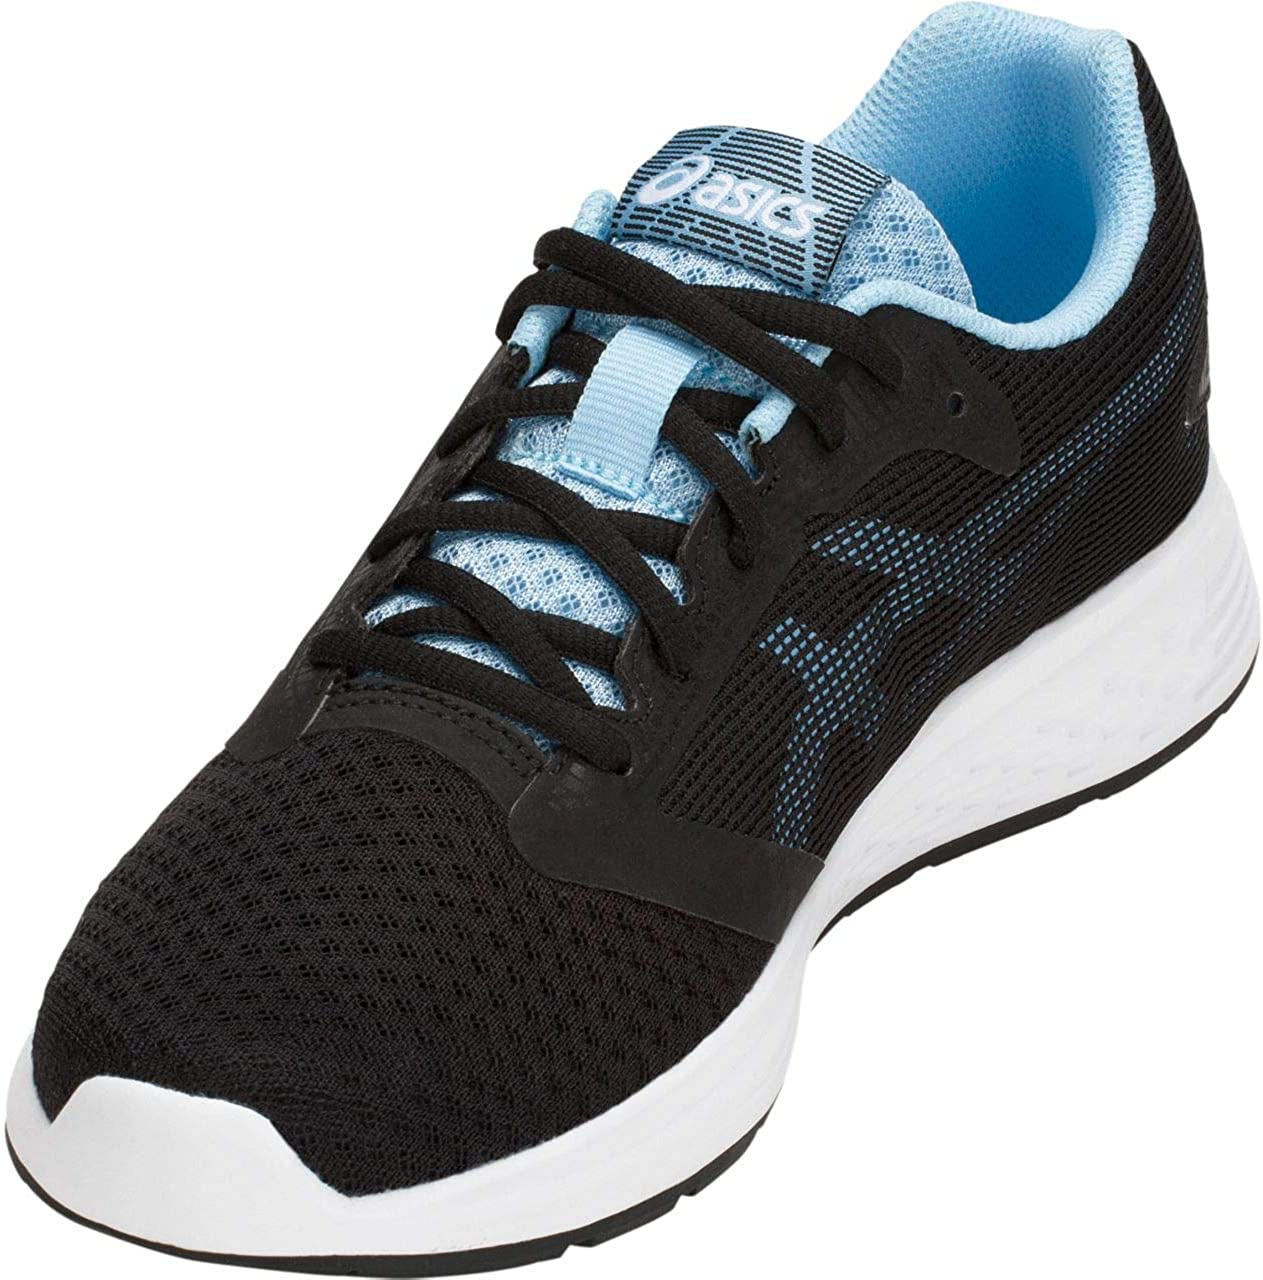 ASICS Women's Patriot New Orleans Mall security 10 Running Skylight Shoes Black 11